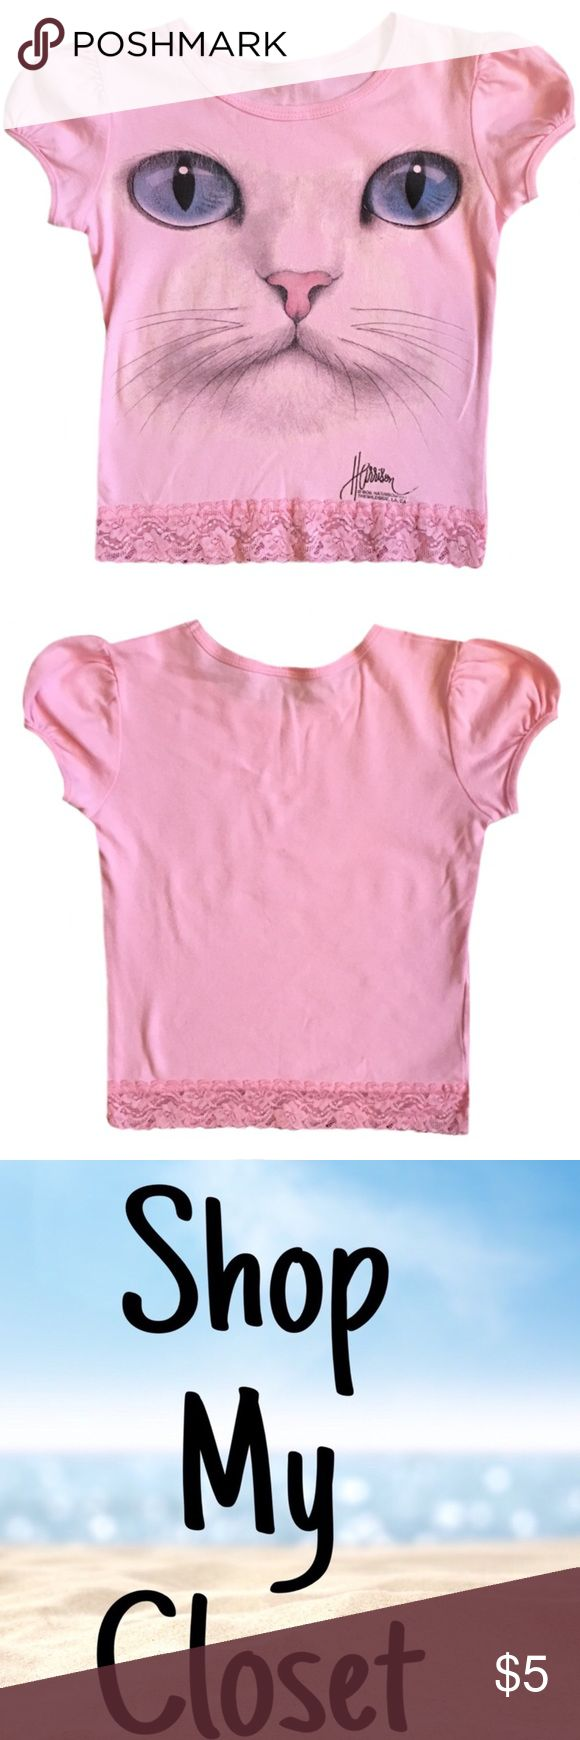 🌟New Listing🌟 Girl's Short Sleeve Shirt ◾️Gently used girl's short sleeve kitty shirt                                                                                   ◾️Tags have been removed but the size is 5/6                                                                   ◾️Bundle and Save Shirts & Tops Tees - Short Sleeve